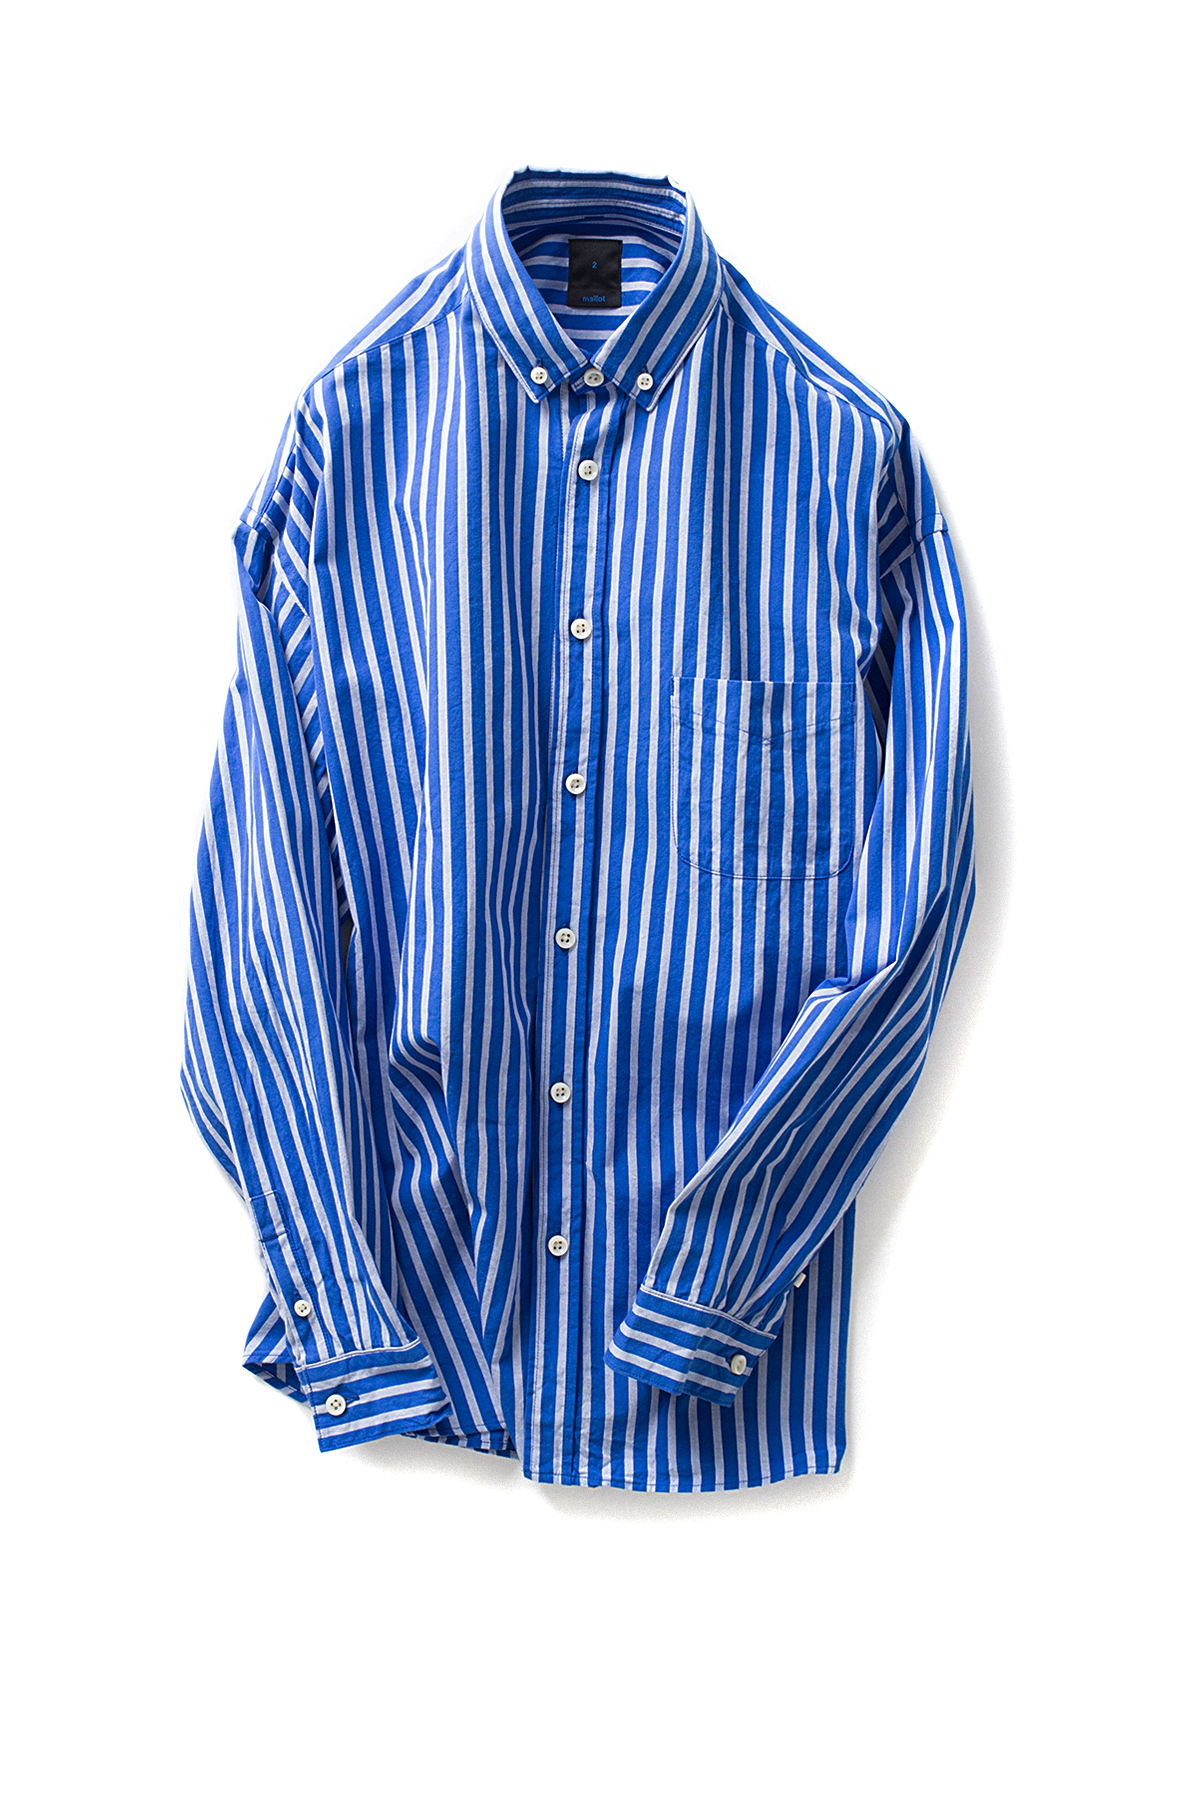 maillot : Stripe BD Shirt (Blue x Grey)